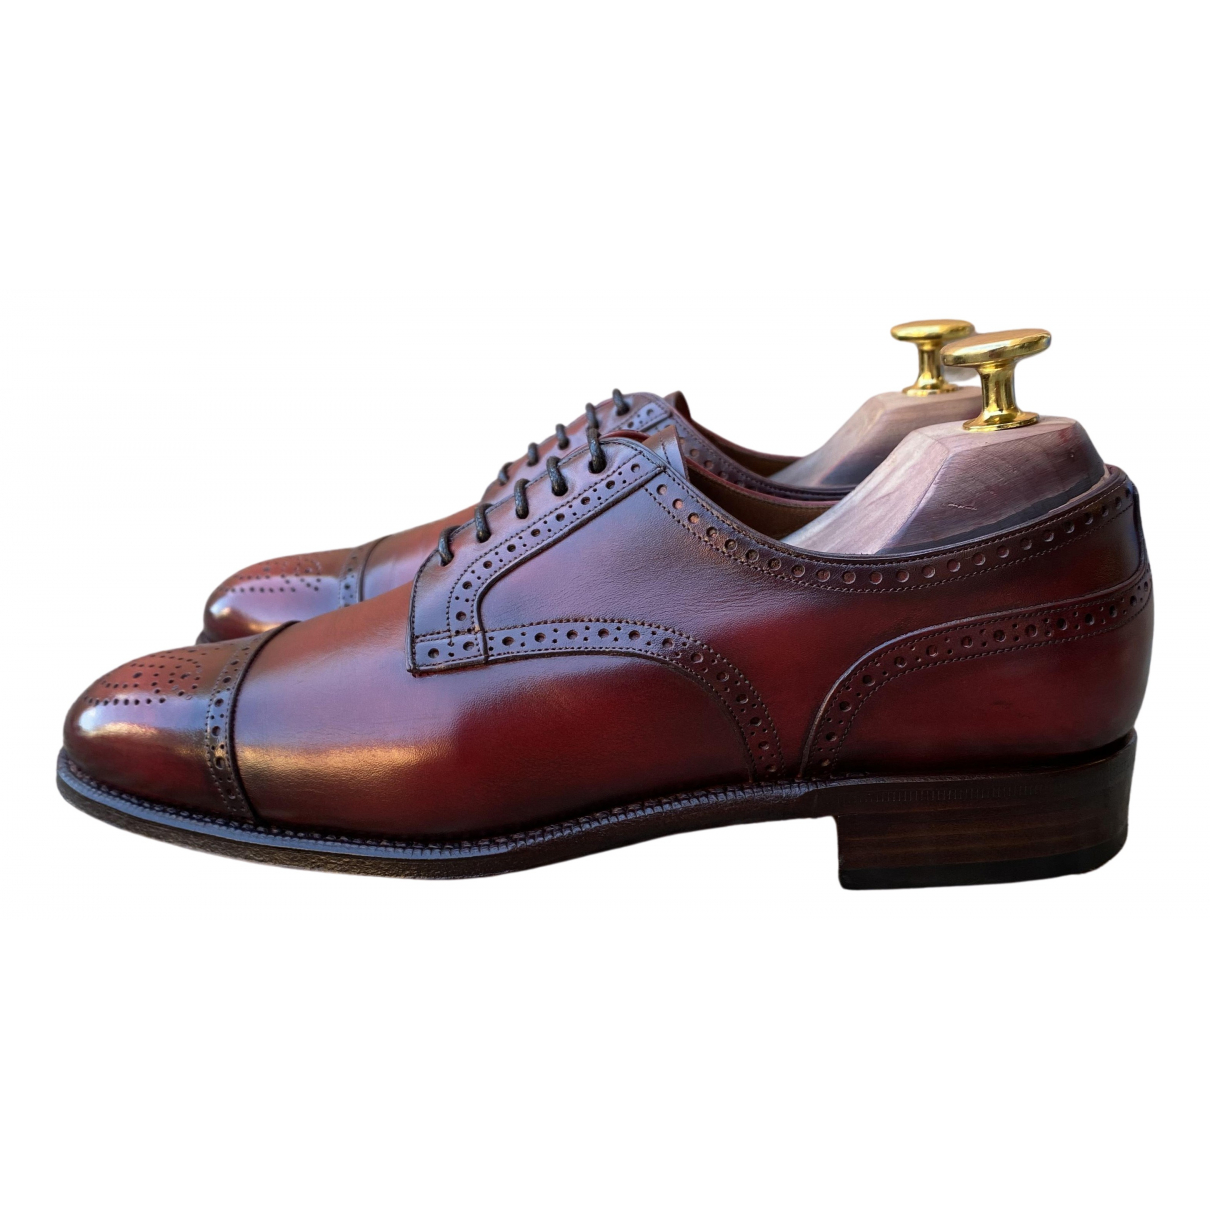 Non Signé / Unsigned N Burgundy Leather Lace ups for Women 4.5 UK